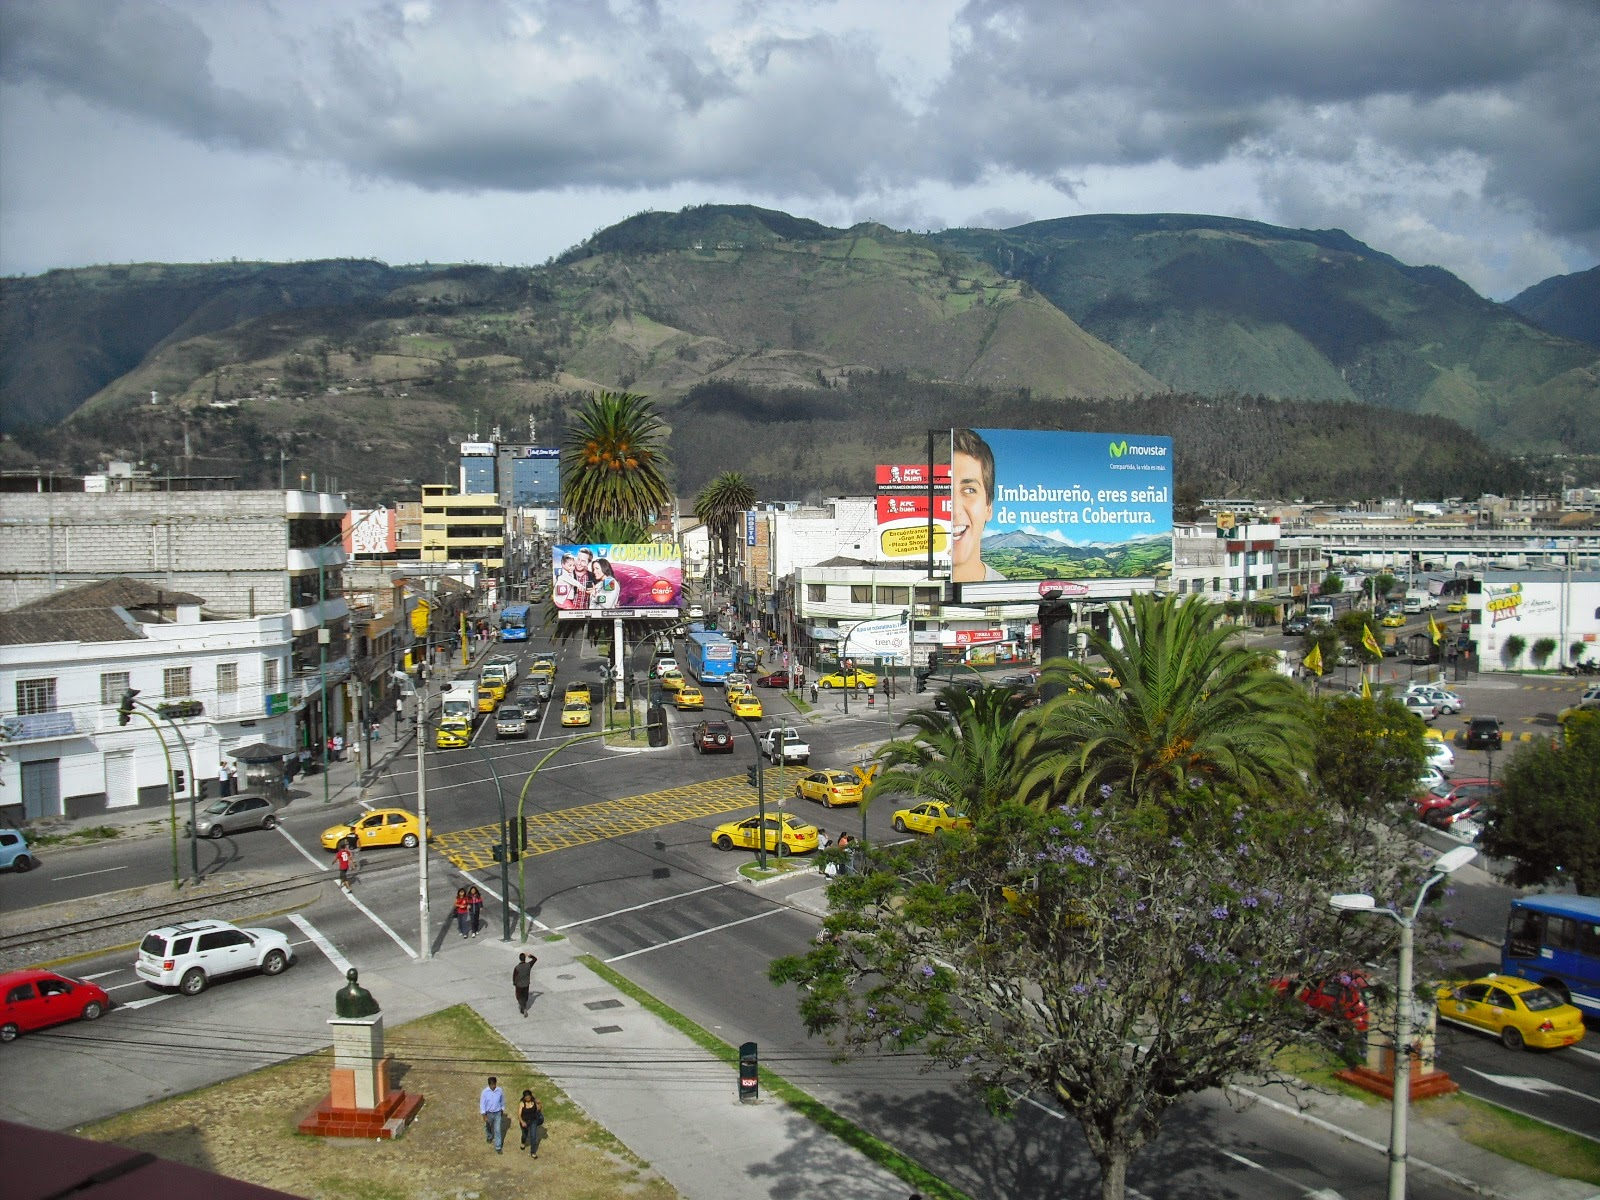 The picturesque Ibarra, Ecuador.